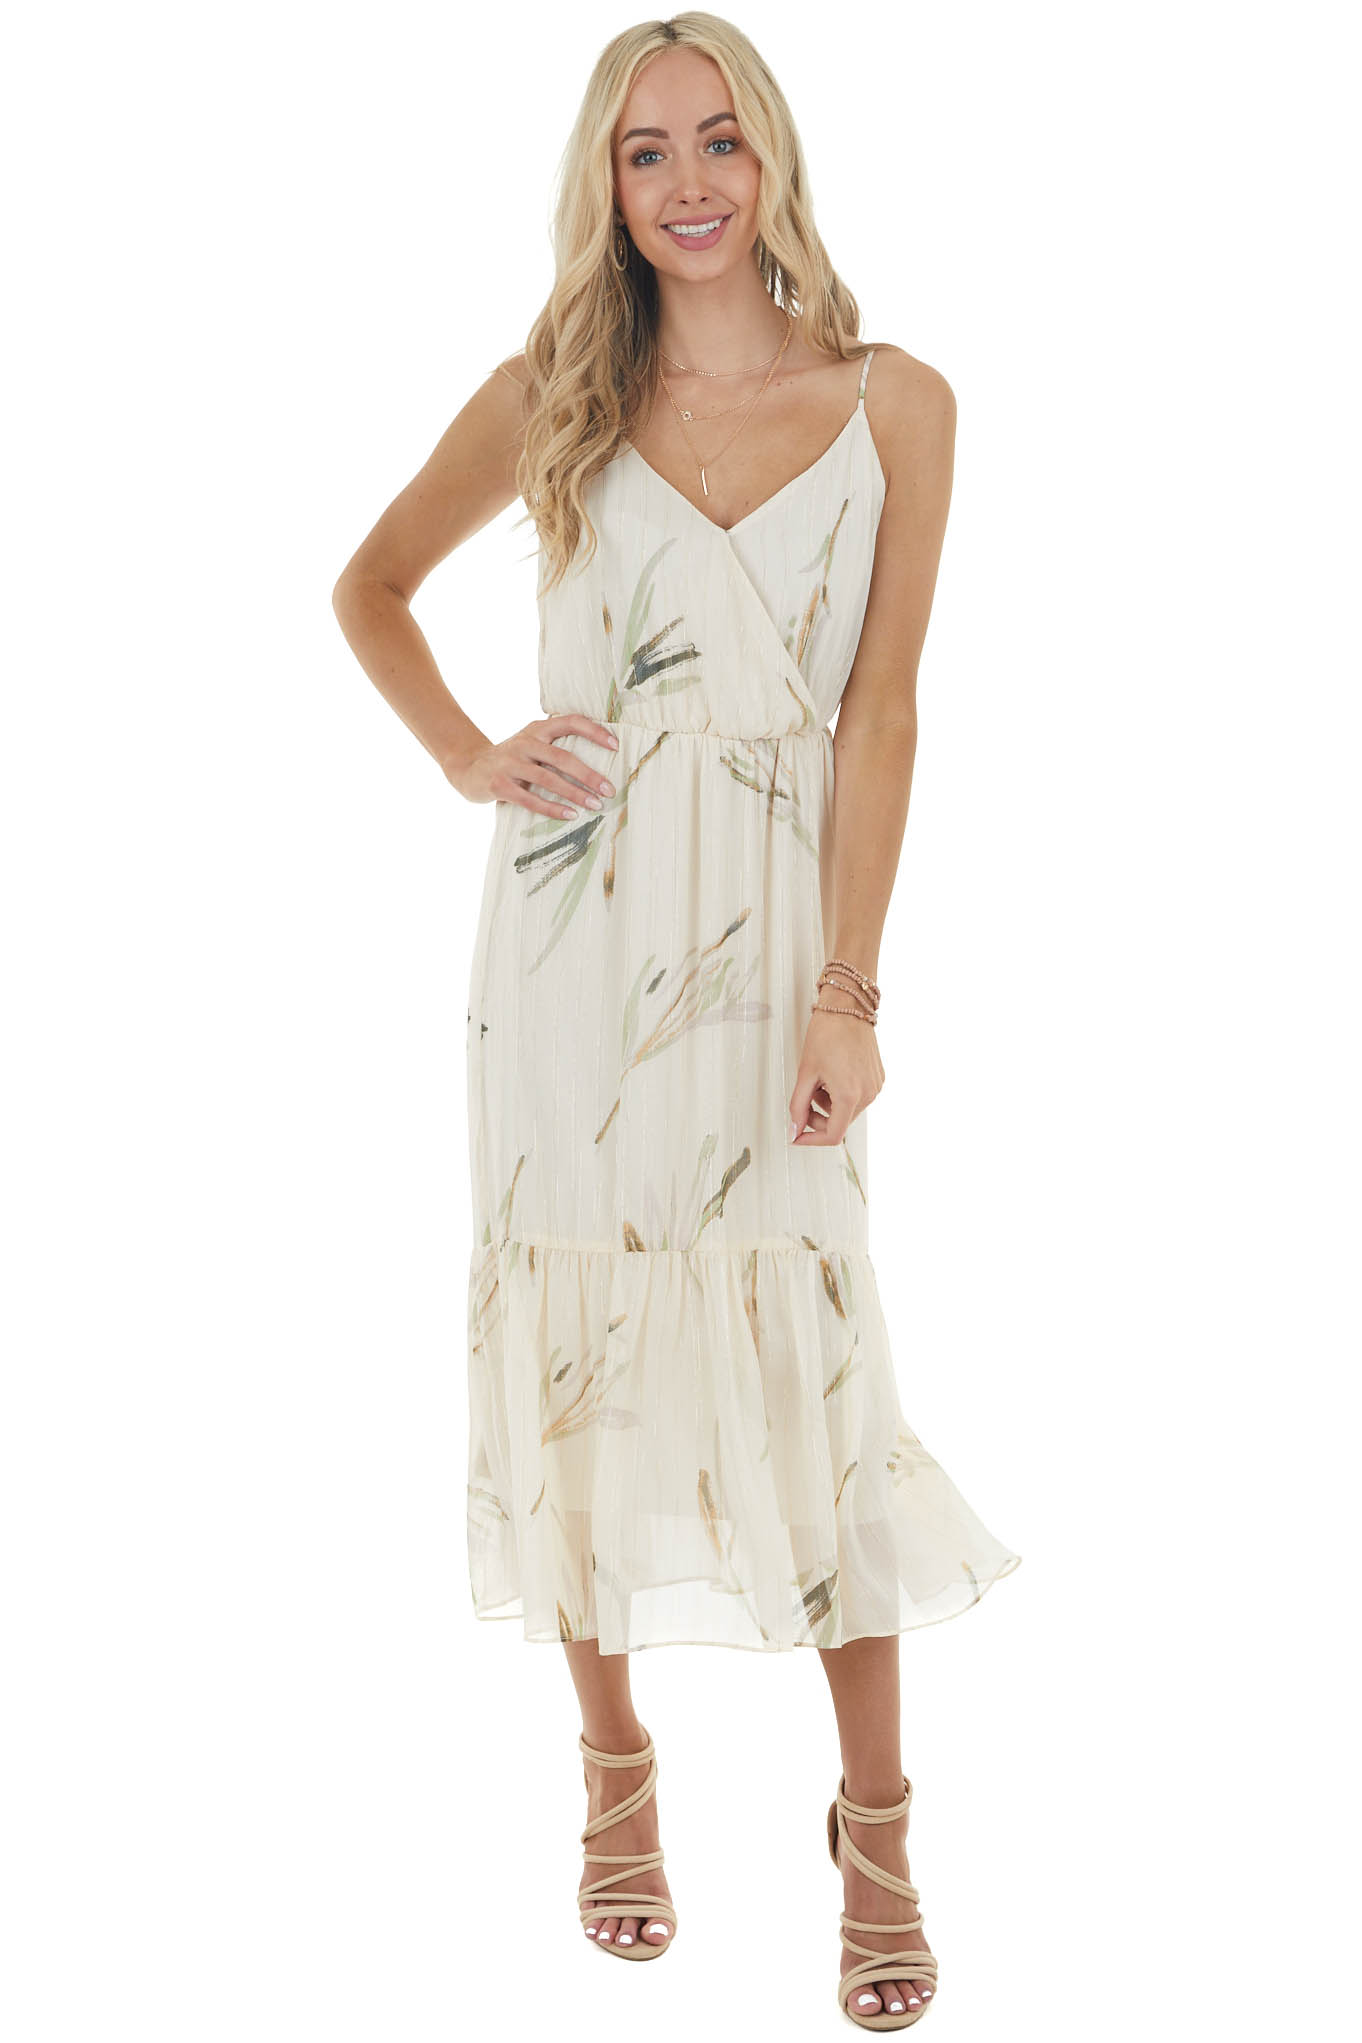 Vanilla Woven Surplice Dress with Abstract Leaf Details